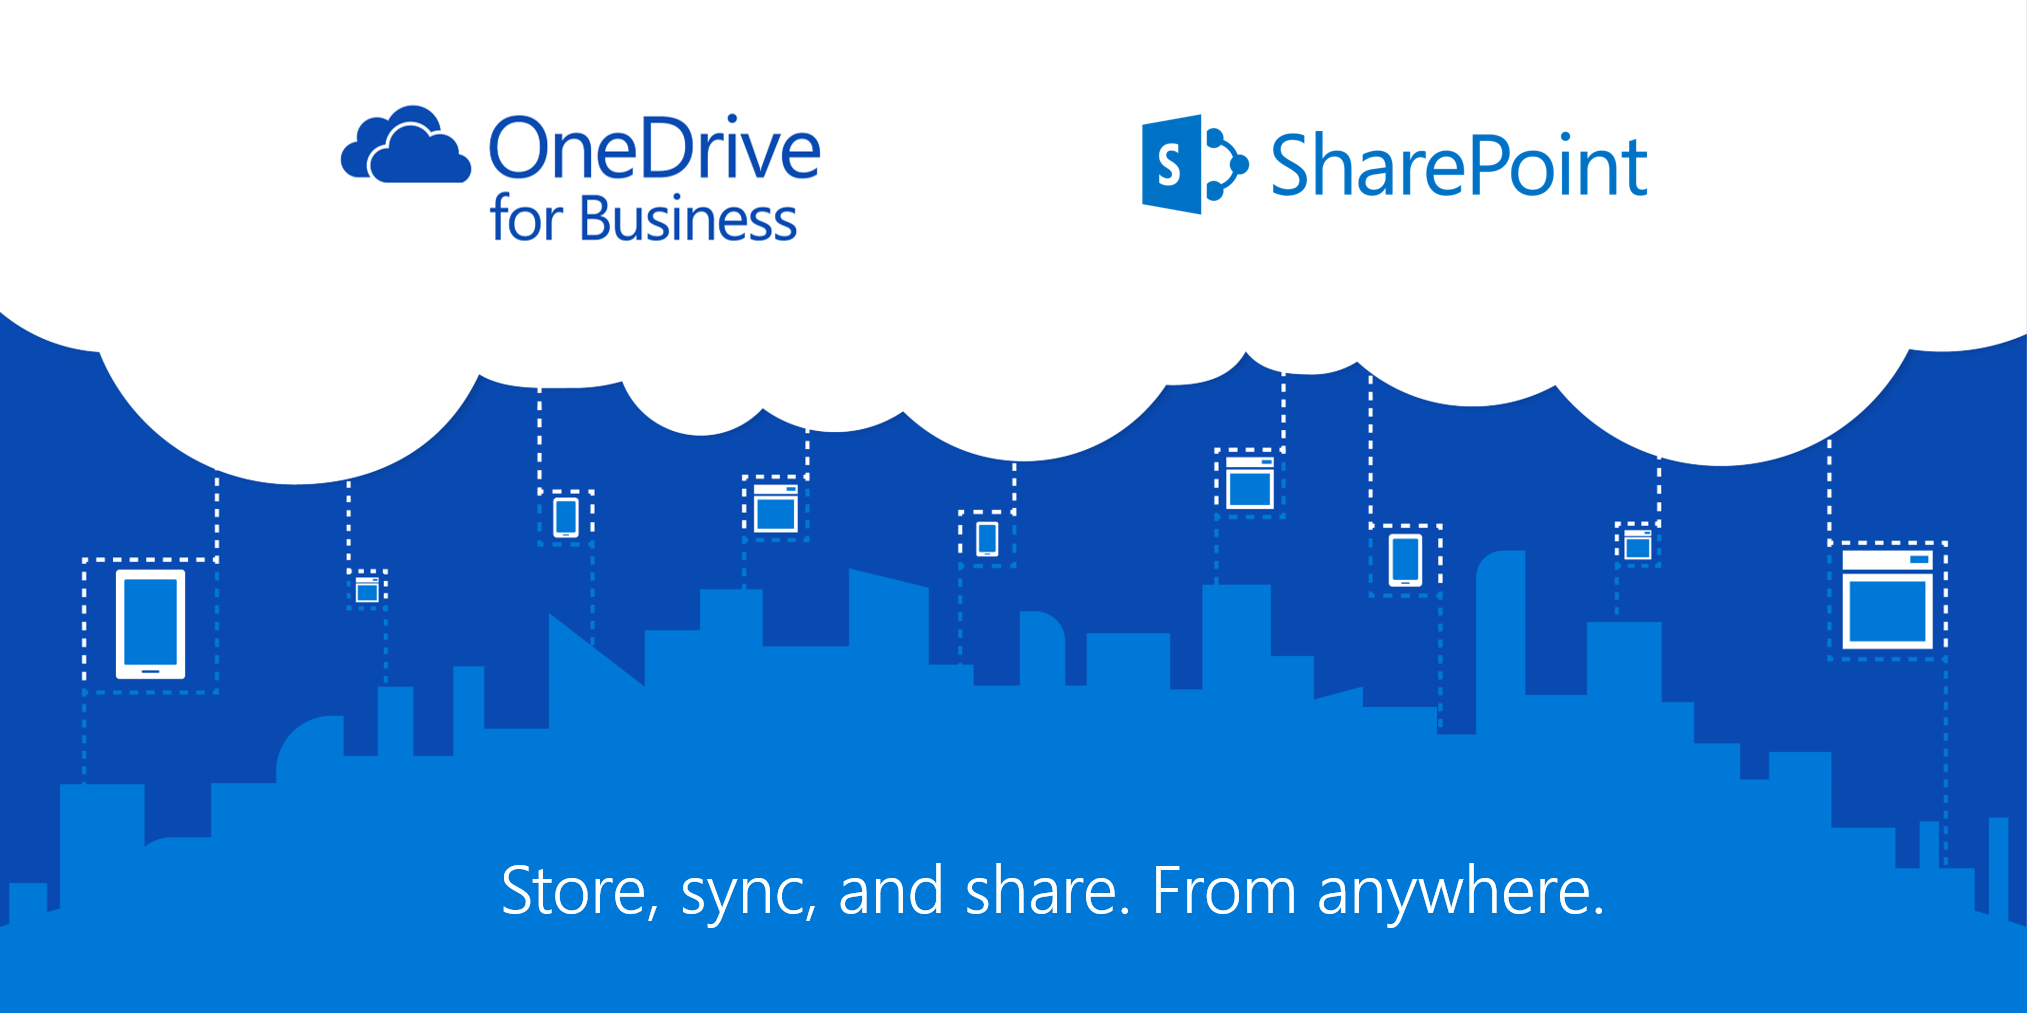 Set up OneDrive for Business in a SharePoint 2016 on-prem environment! - Microsoft Tech Community - 914